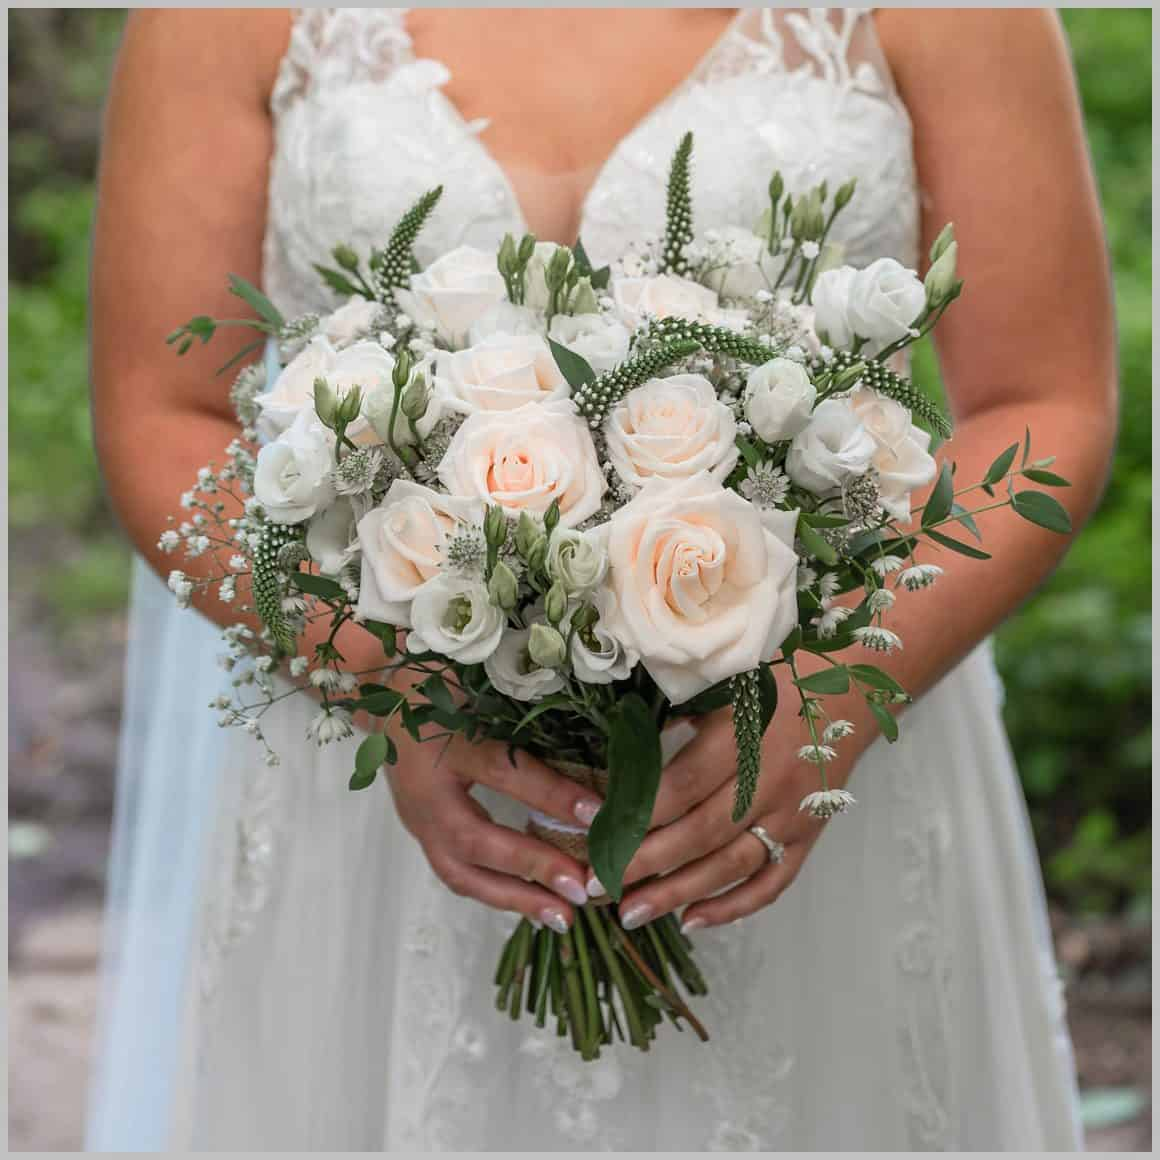 Flower detail shot showing white roses in brides hands